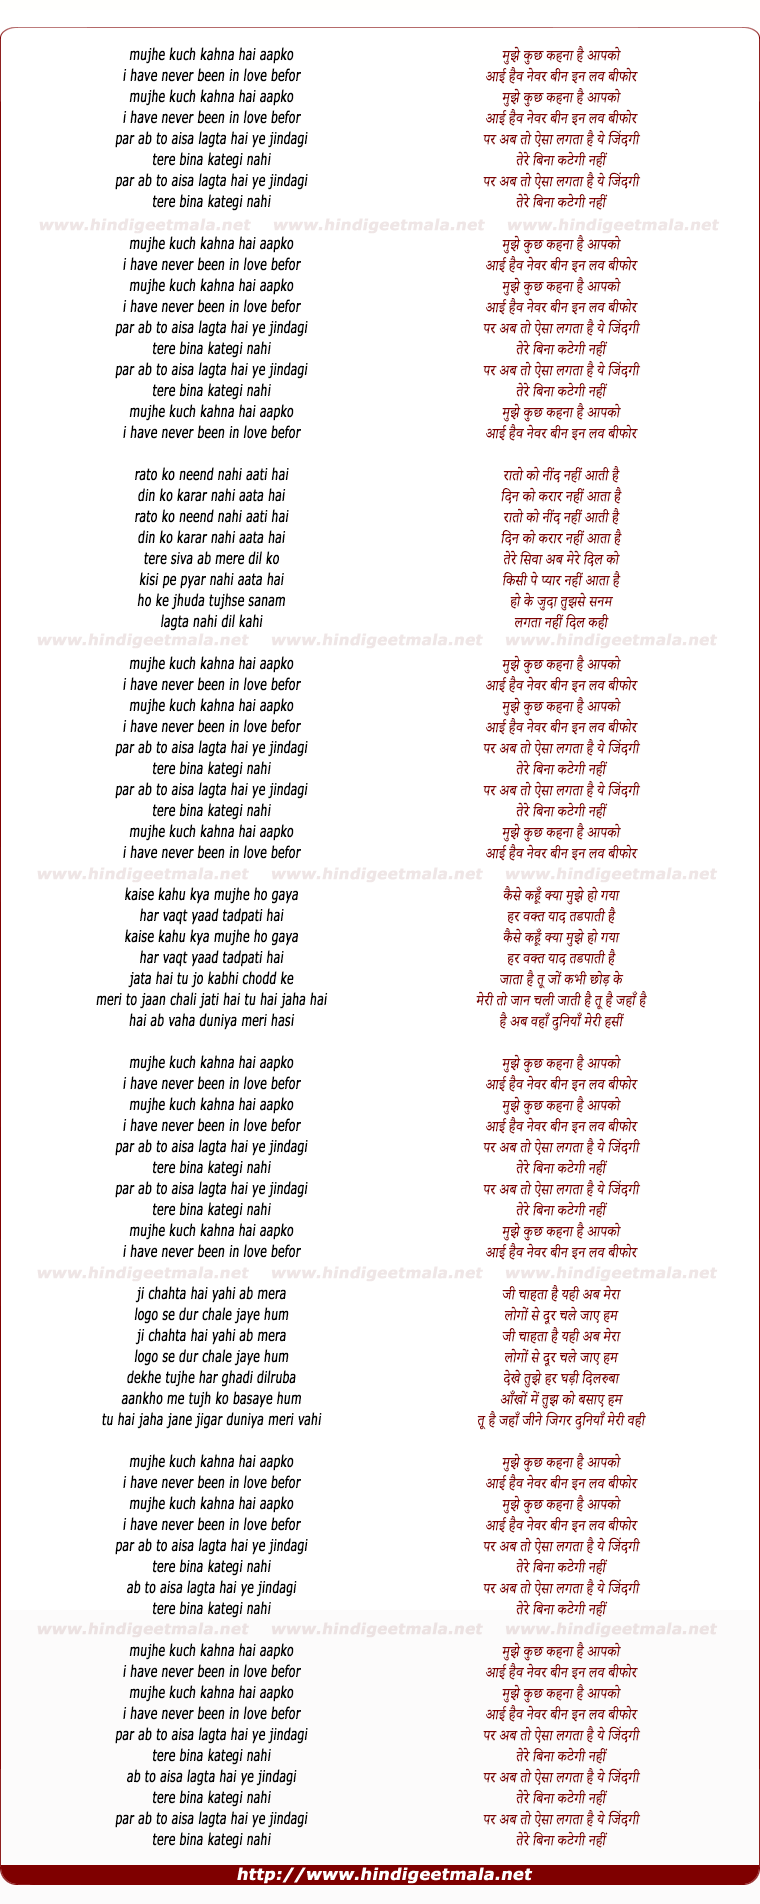 lyrics of song Mujhe Kuch Kahna Hai Aapko